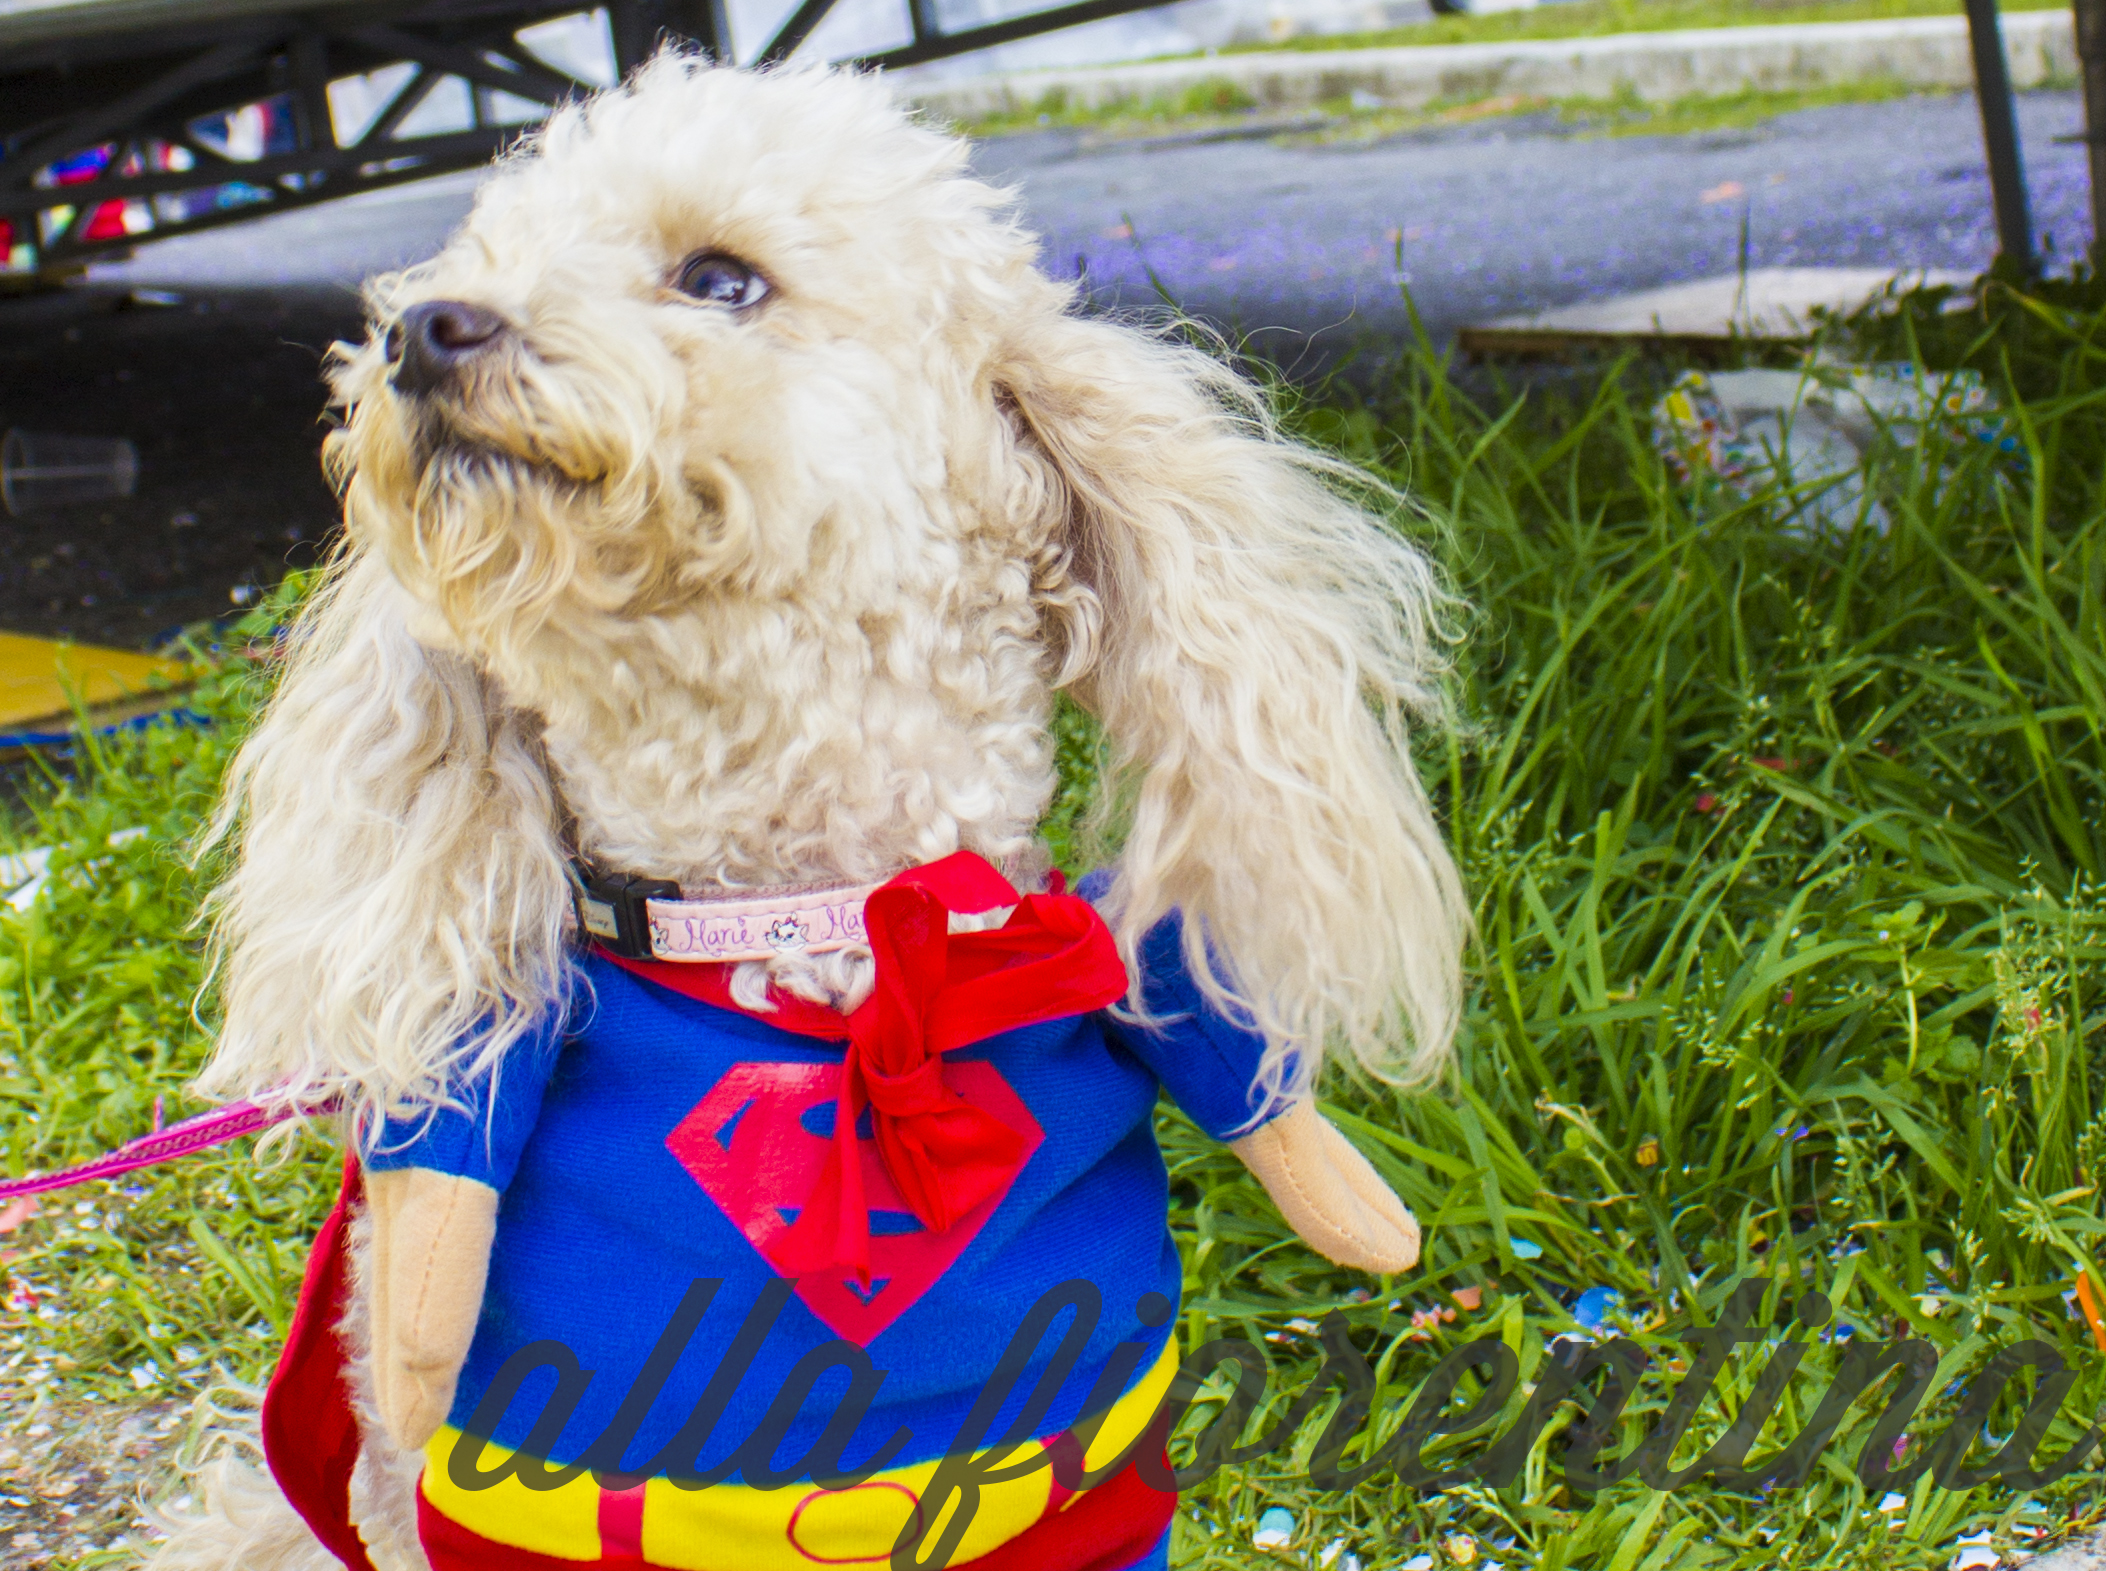 Superman Puppy At Carnival In Viareggio